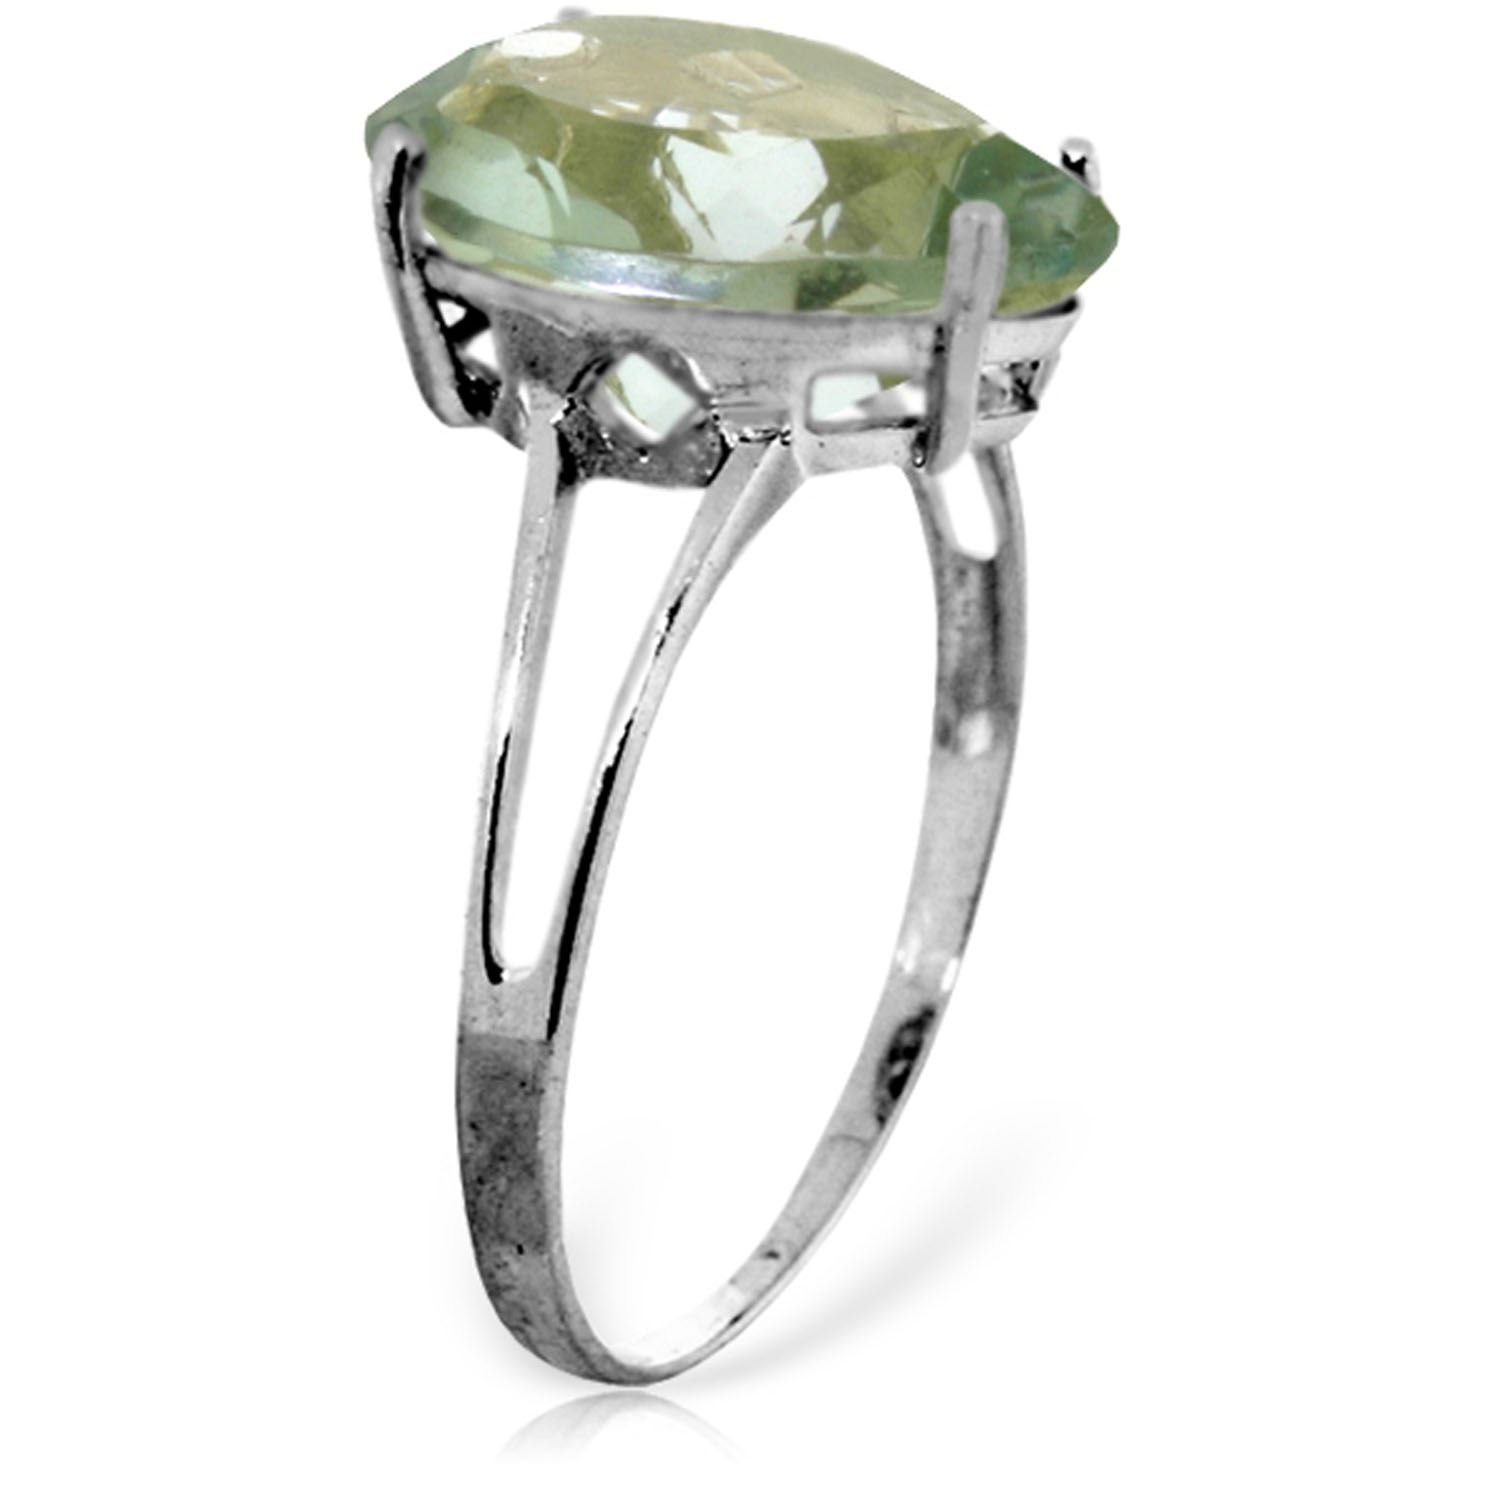 ALARRI 5 Carat 14K Solid White Gold Love Is A Verb Green Amethyst Ring Ring Size 7.5 by ALARRI (Image #1)